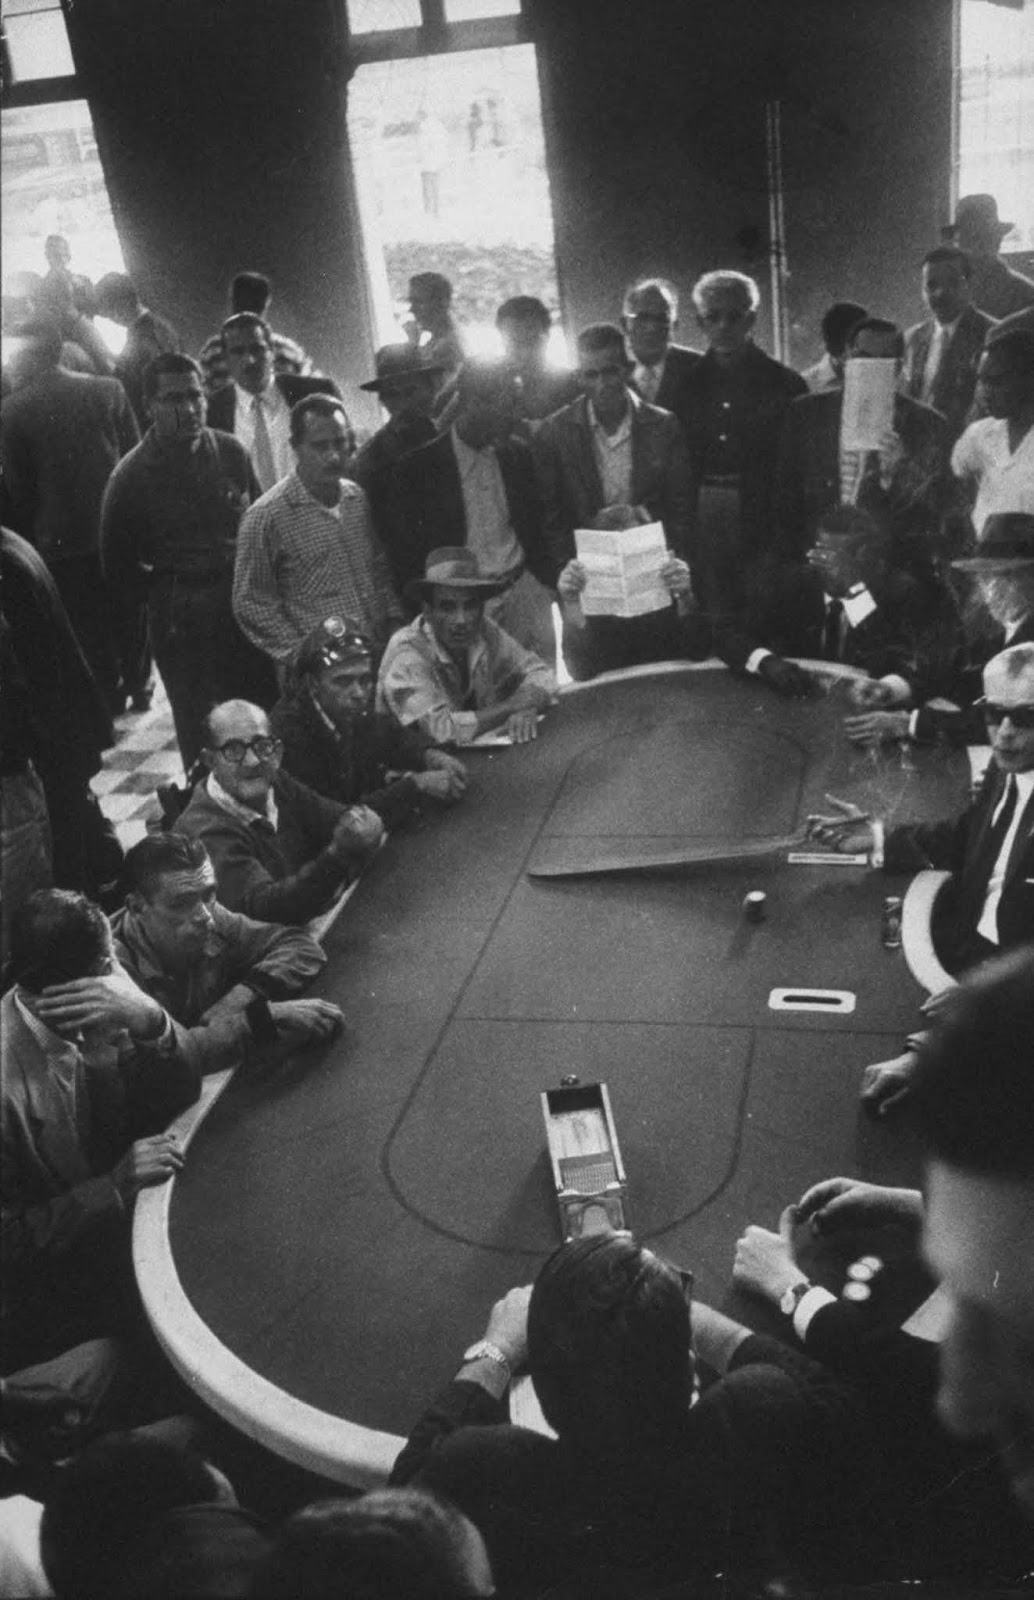 Casino players. 1958.